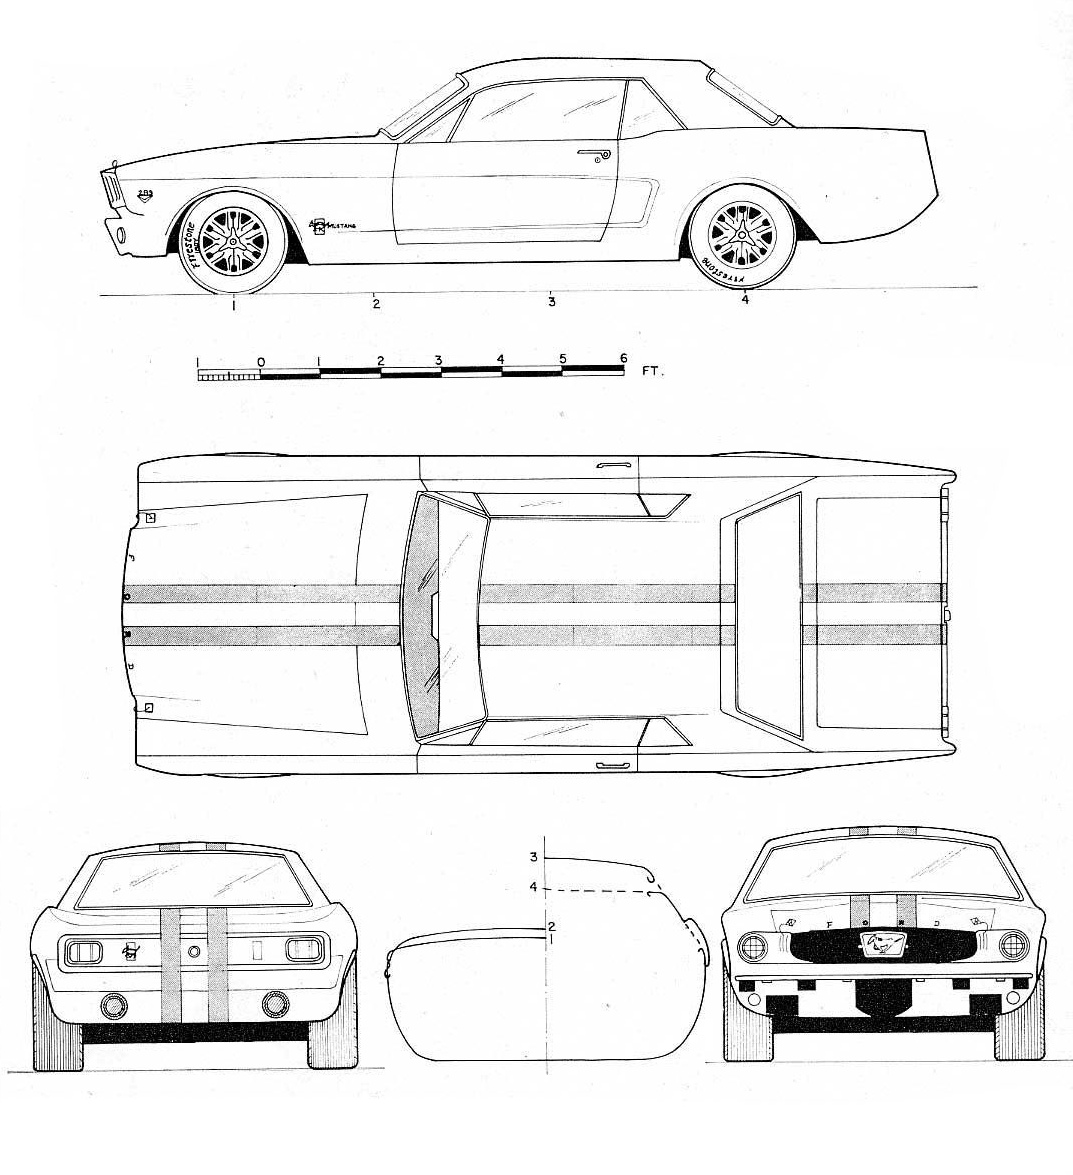 Ford Mustang Blue Print Kj86 Advancedmassagebysara